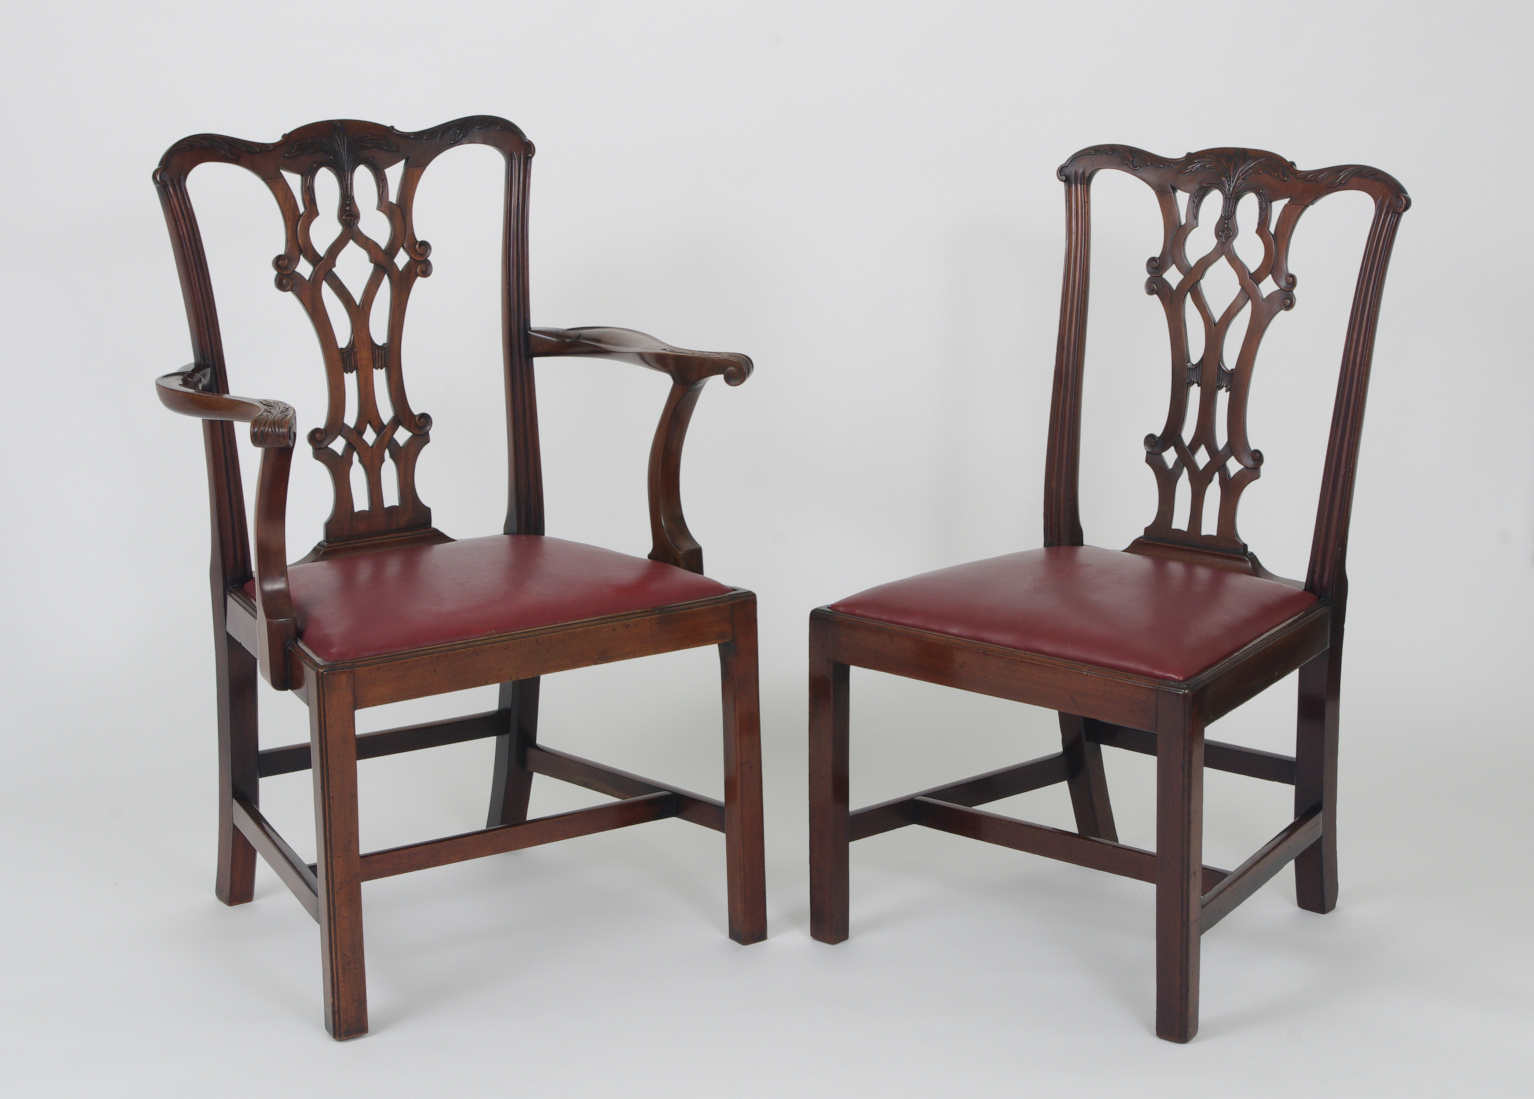 View 2: Set of Eight Chippendale Style Mahogany Dining Chairs (6+2), early 19th c.